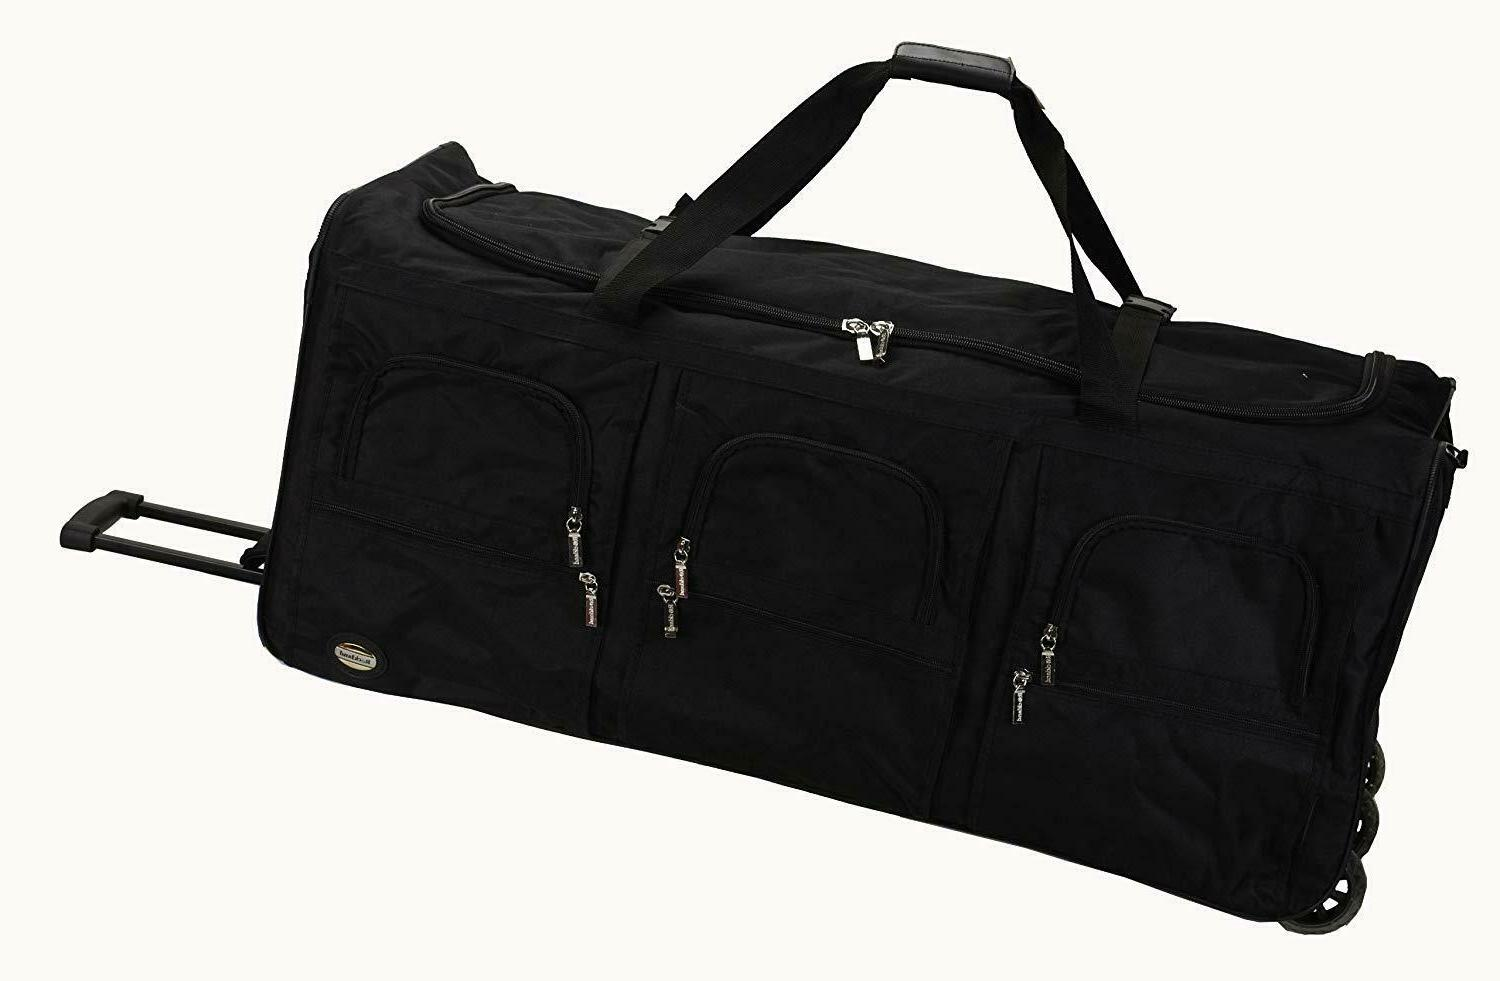 "Duffle Bag Luggage 40"" Rolling for Travel Unisex Adult Black"